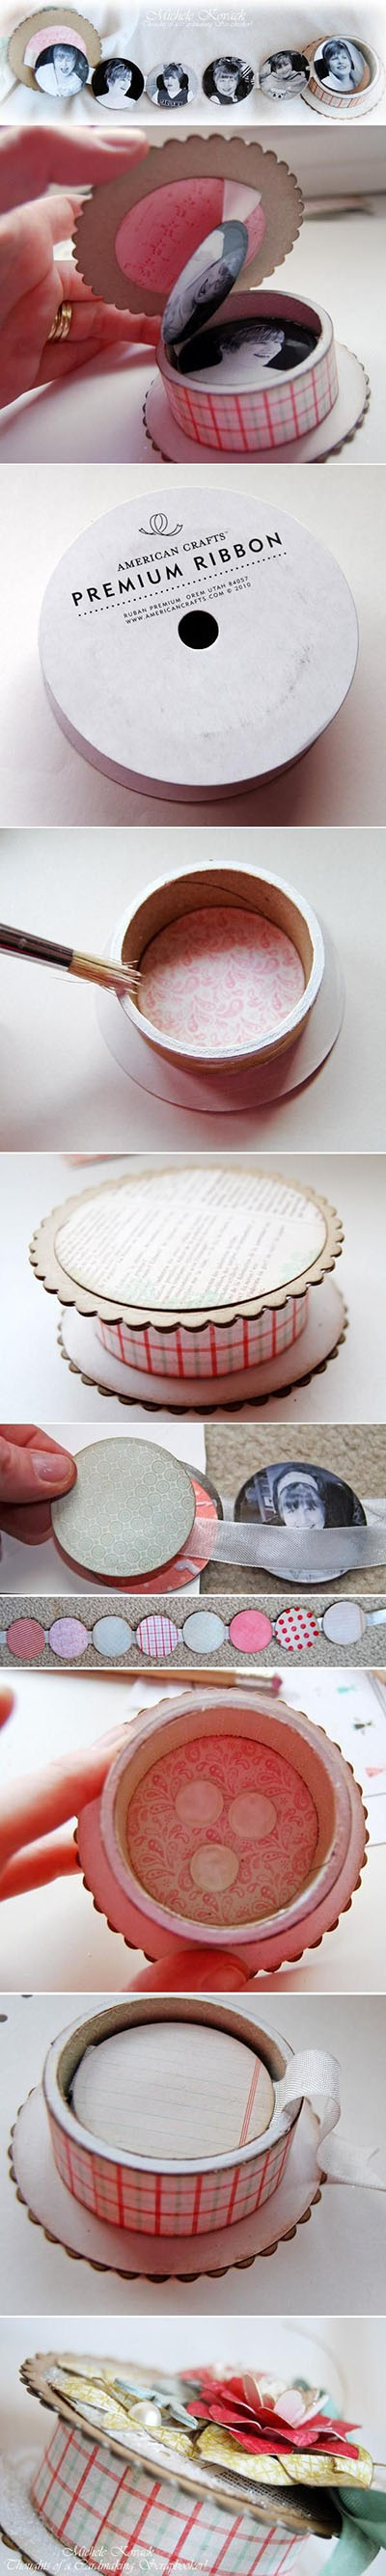 10 DIY Creative Photo Album811fb